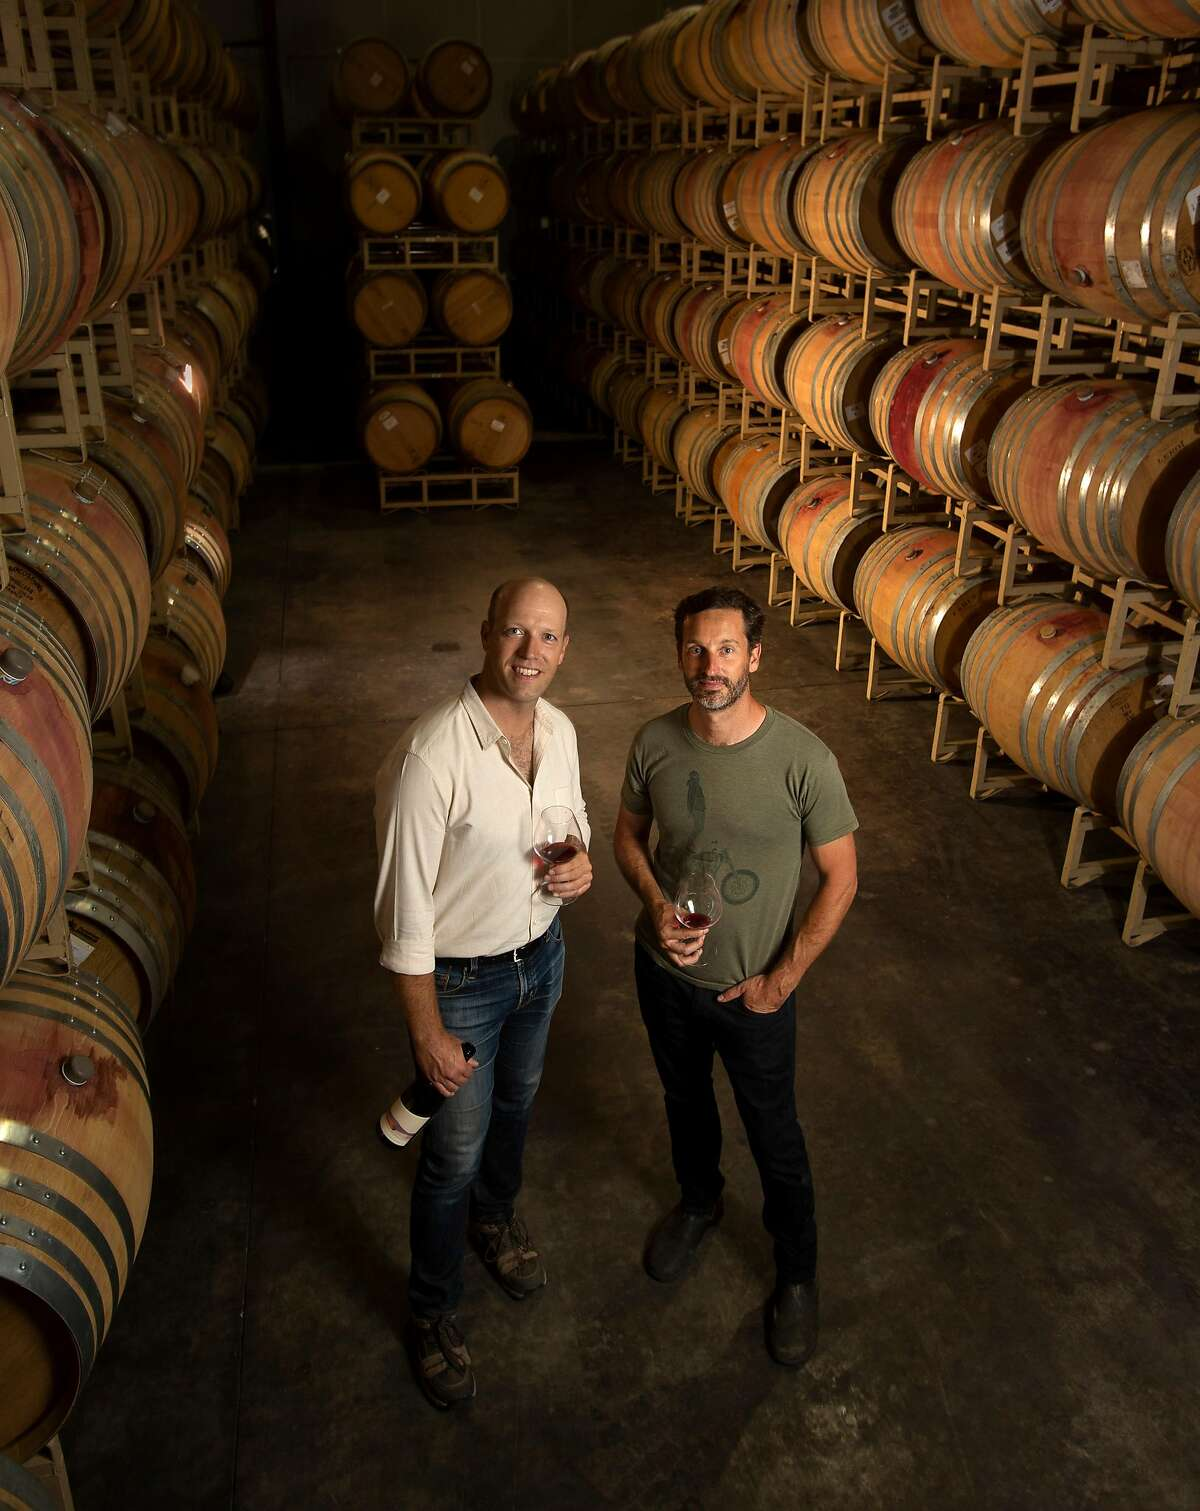 Winery owner Christian Pillsbury, left, and winemaker Cory Waller photographed at Eden Rift Vineyards on Thursday, 7/26, 2018, in Hollister, California. Eden Rift Vineyards is a historic property in Hollister that has been revived by a new owner.